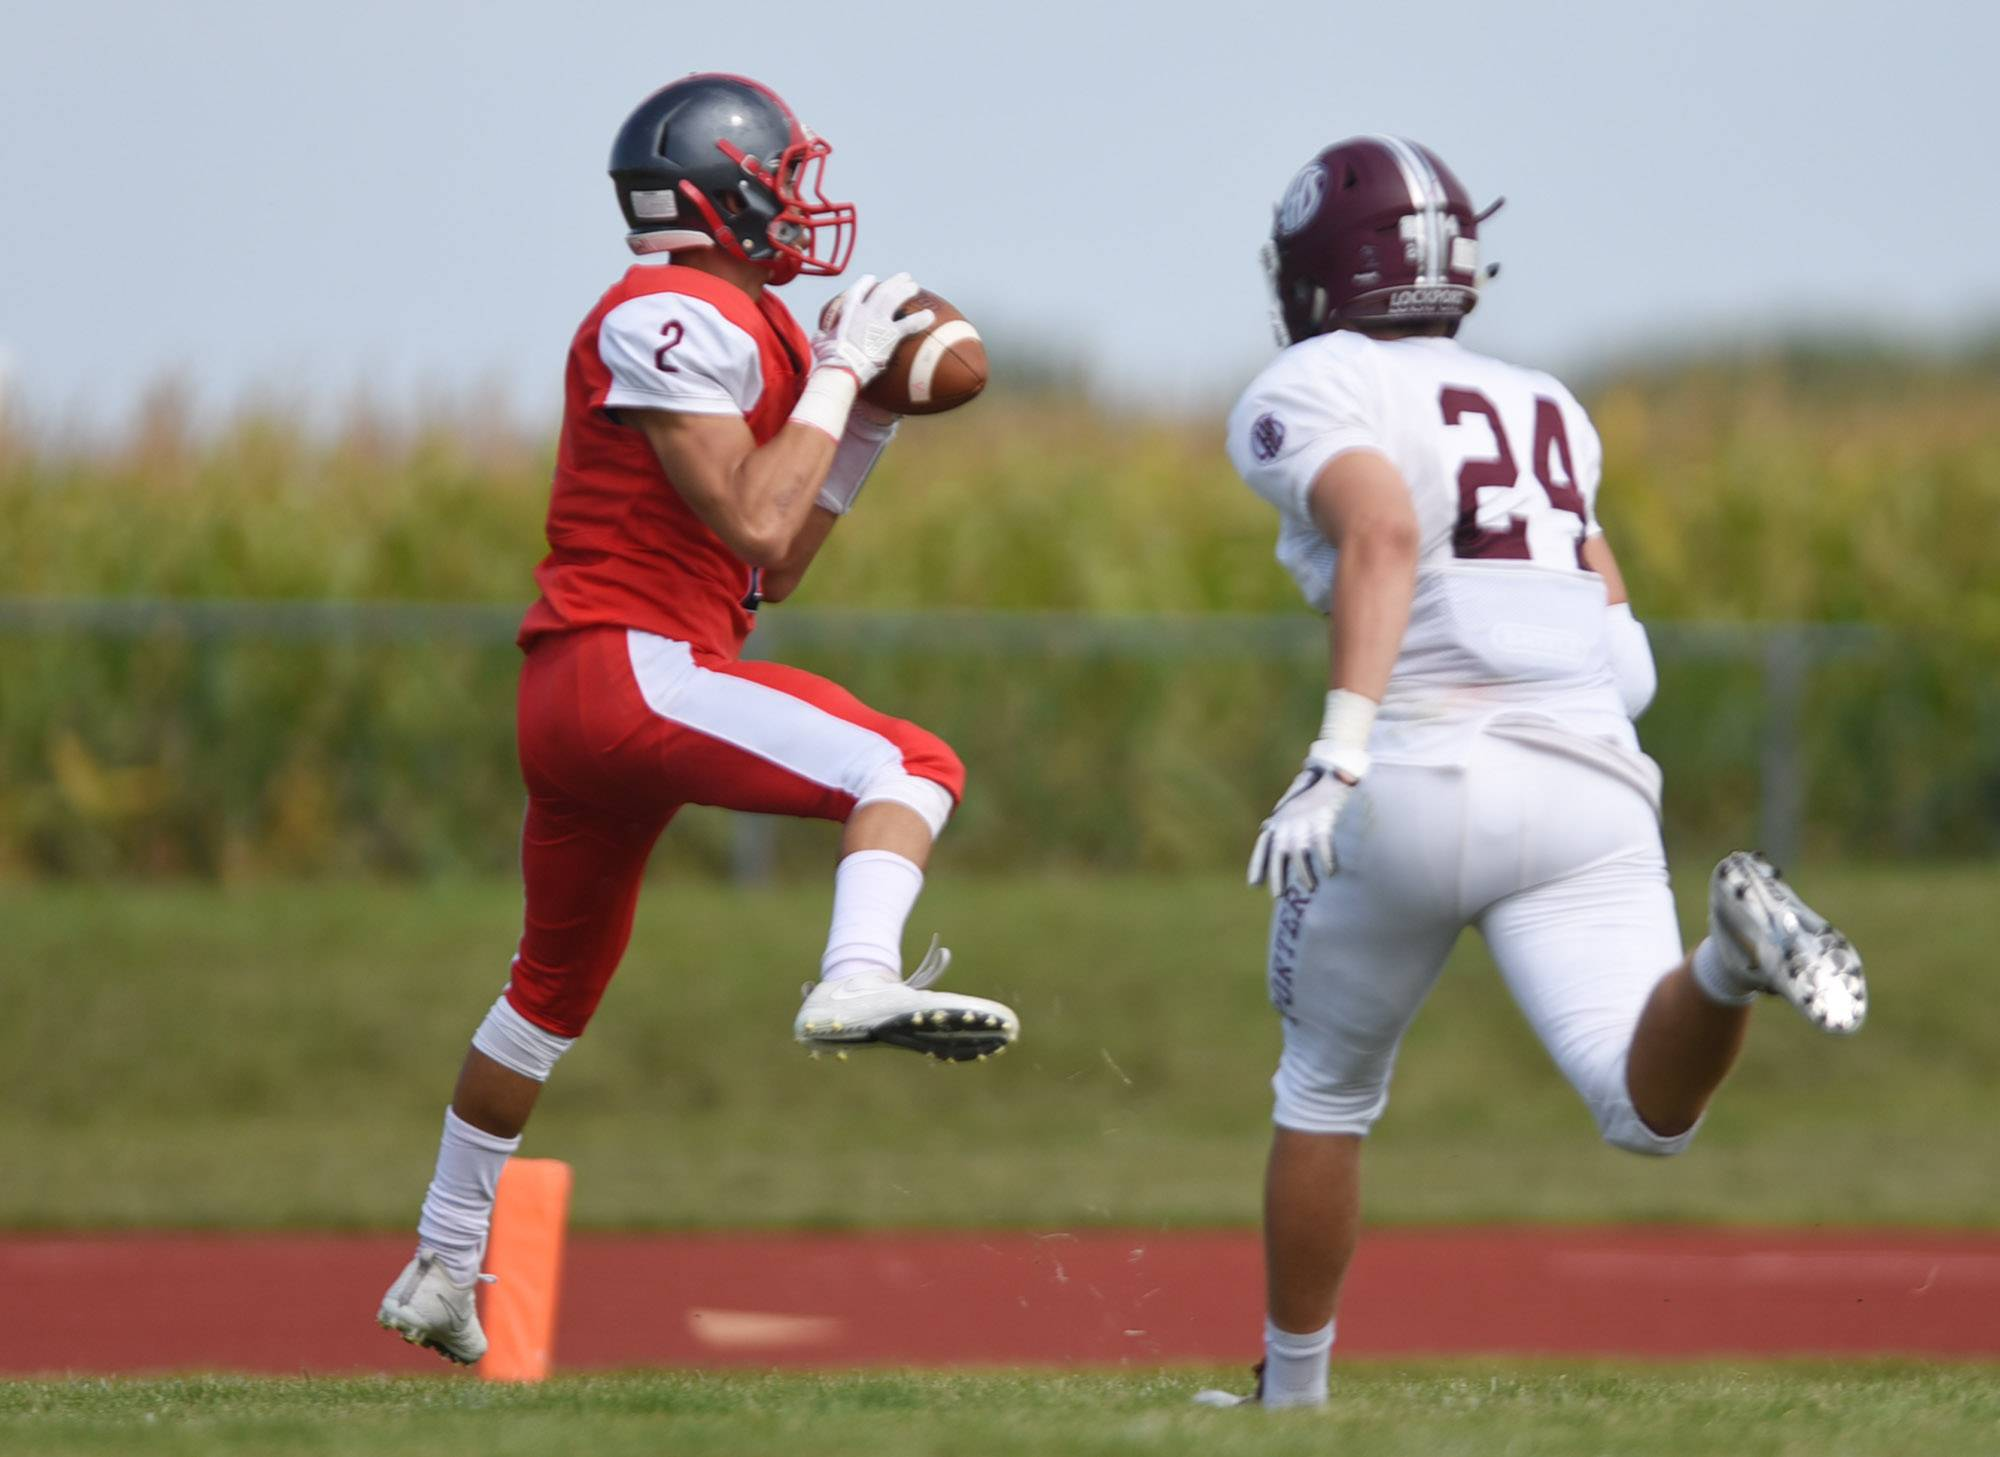 South Elgin's Azxavier Salinas catches a touchdown pass in the first half against Lockport Saturday in South Elgin.